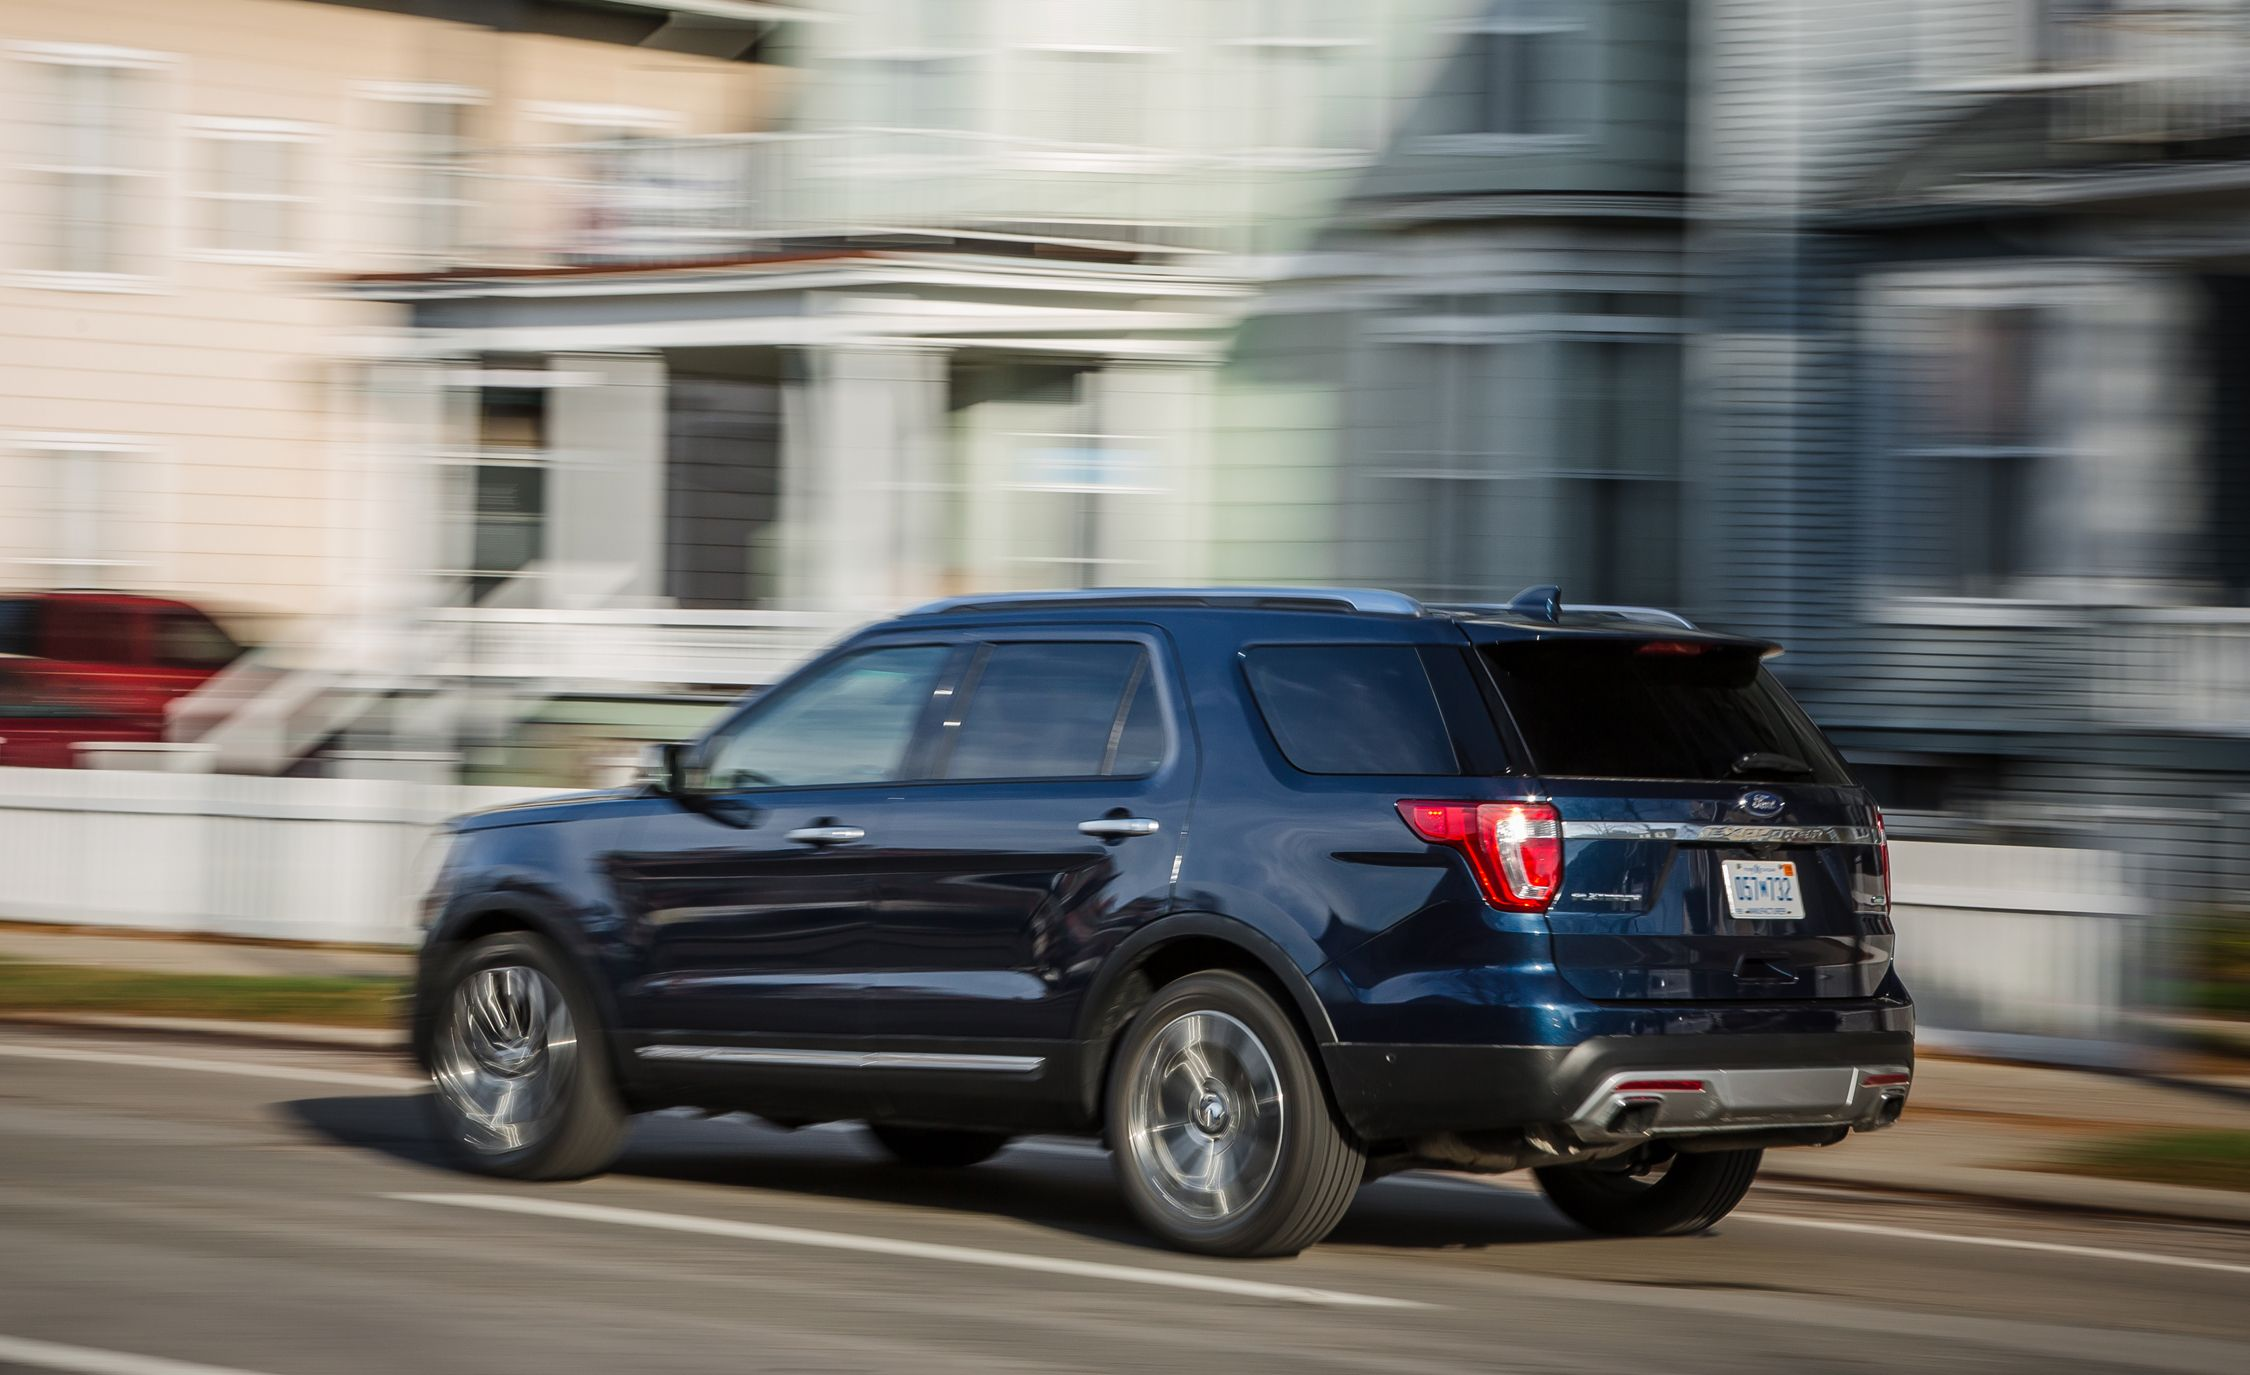 Ford Explorer Reviews Ford Explorer Price s and Specs